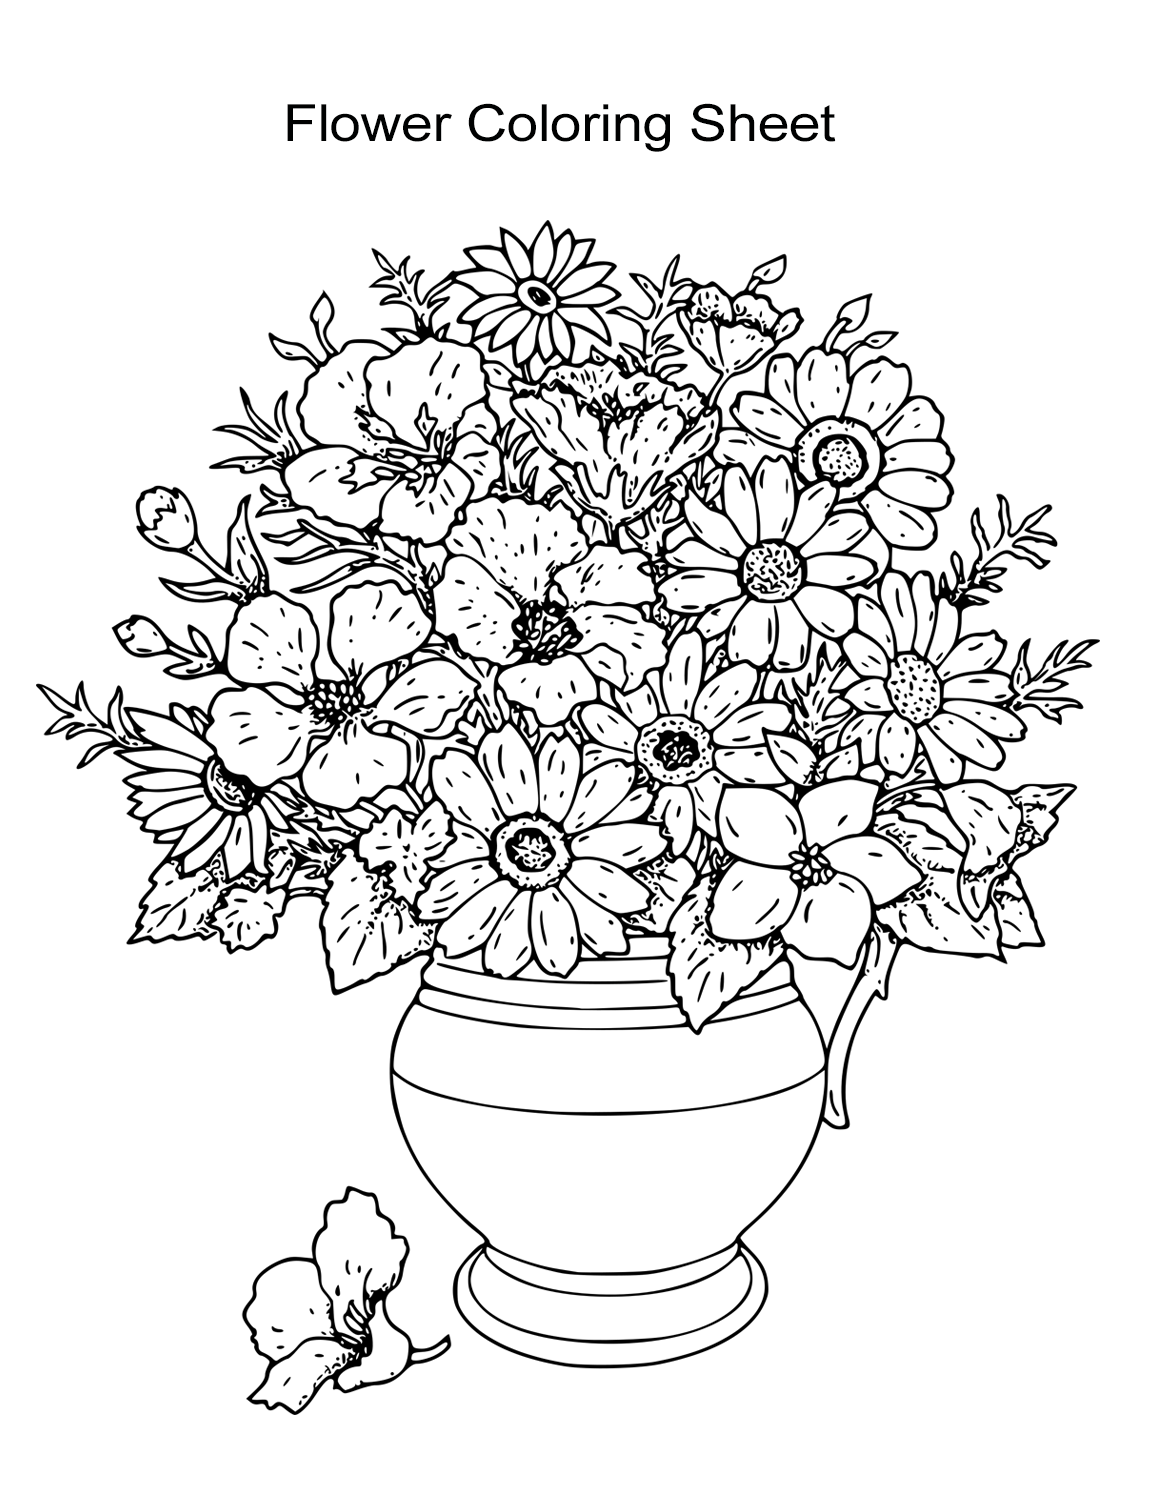 coloring flowers for adults 10 flower coloring sheets for girls and boys all esl adults flowers for coloring